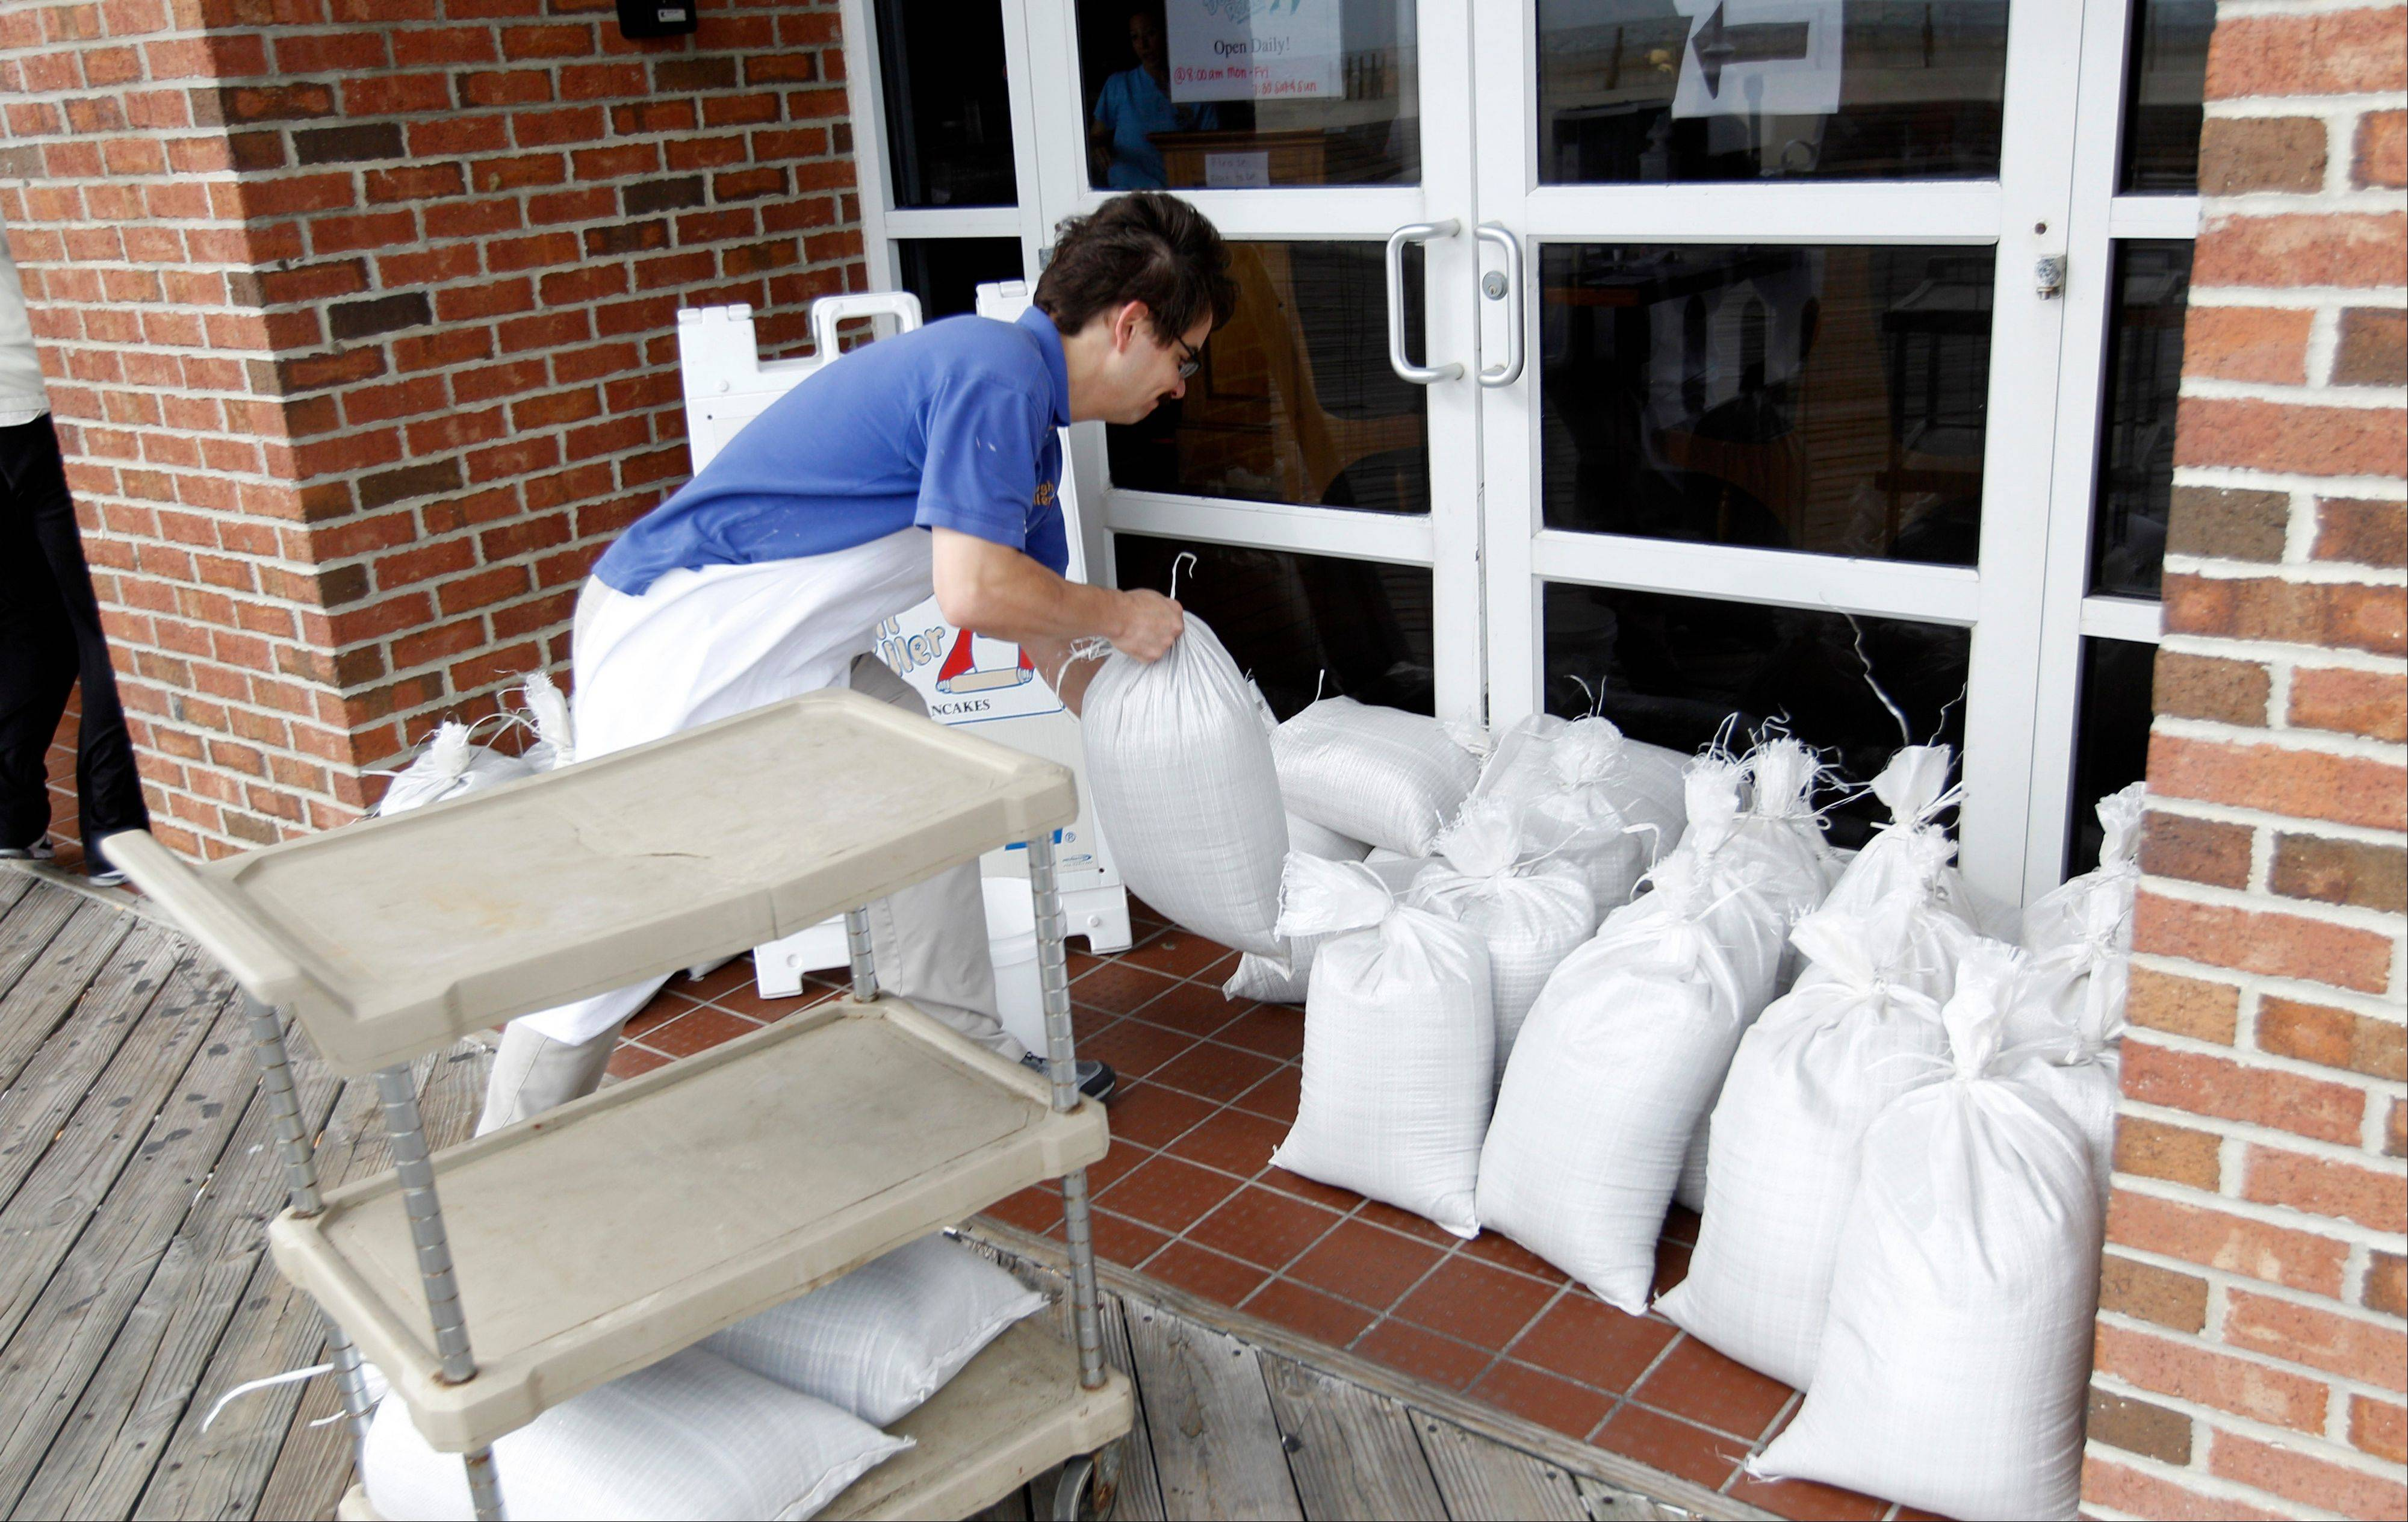 A restaurant worker piles sand bags at the entrance of the business as Hurricane Sandy approaches the Atlantic Coast, in Ocean City, Md., on Saturday, Oct. 27, 2012.